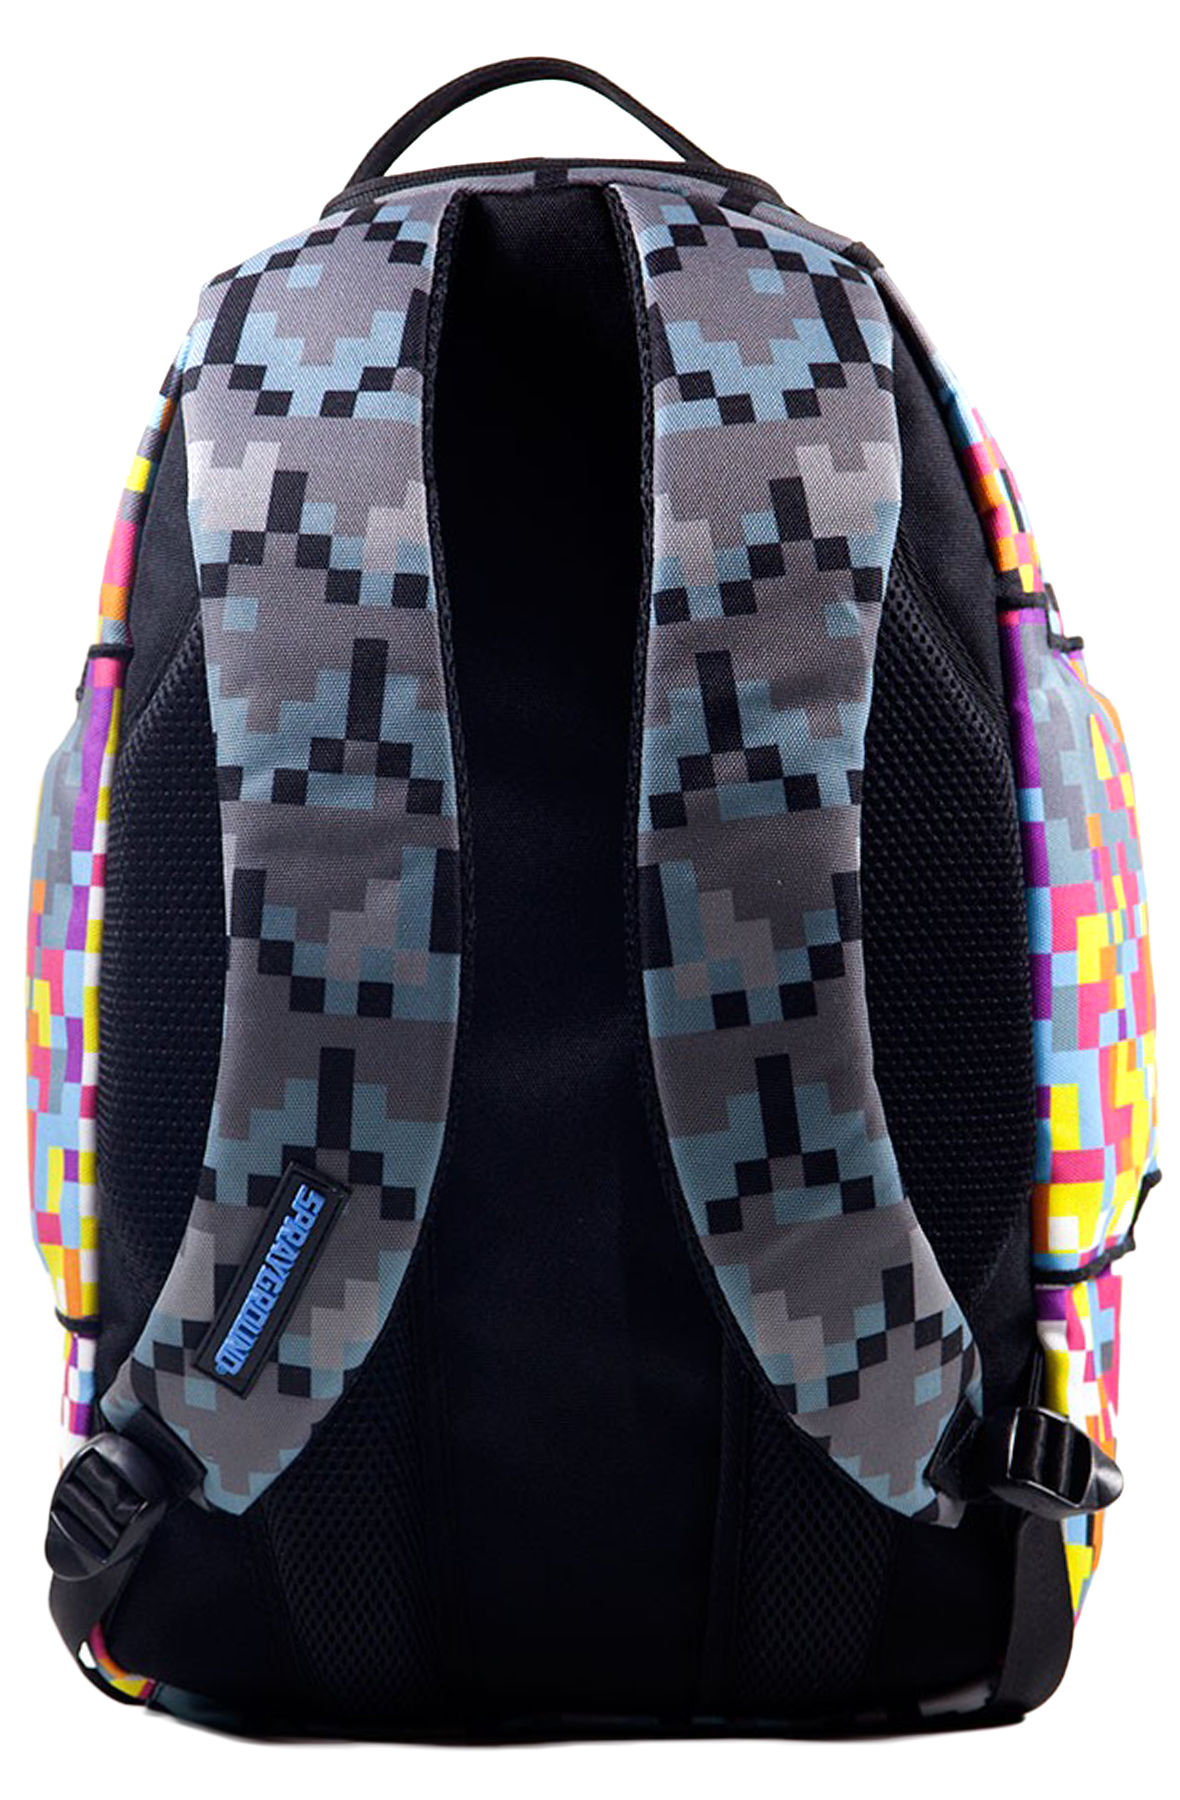 00c567afa1 Lyst - Sprayground The Pixel Wings Backpack for Men